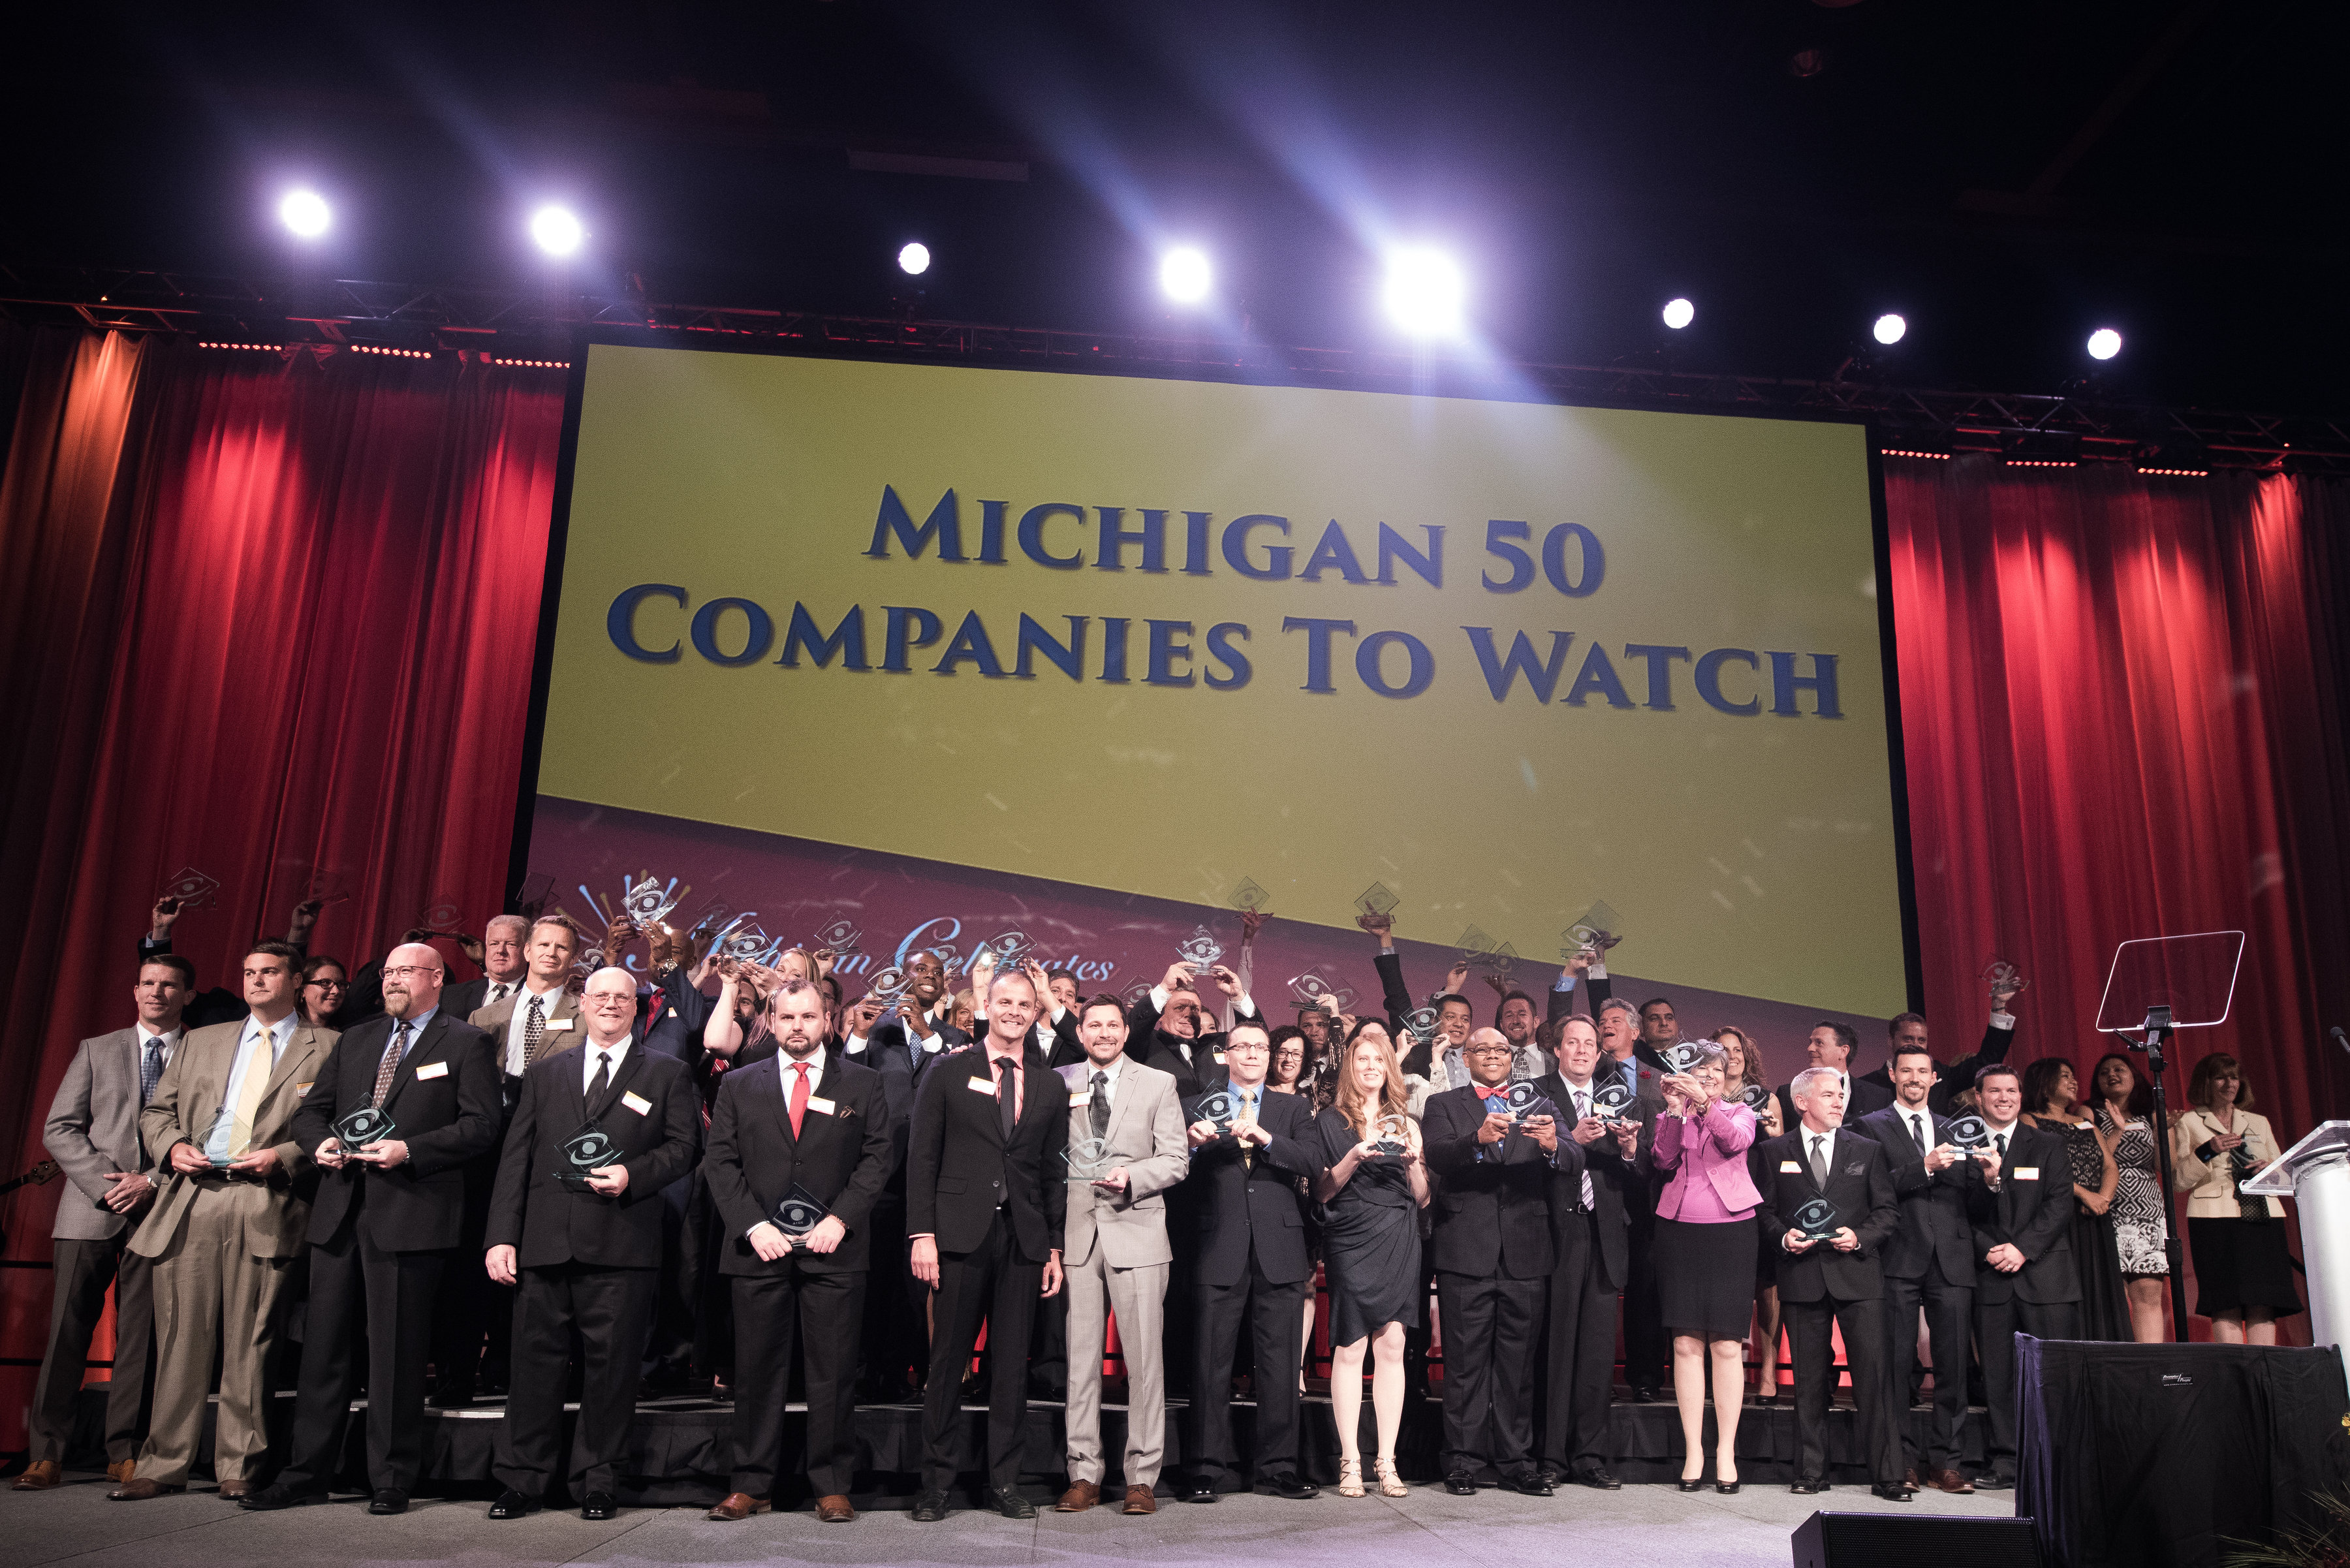 MI 50 Companies to Watch 2016